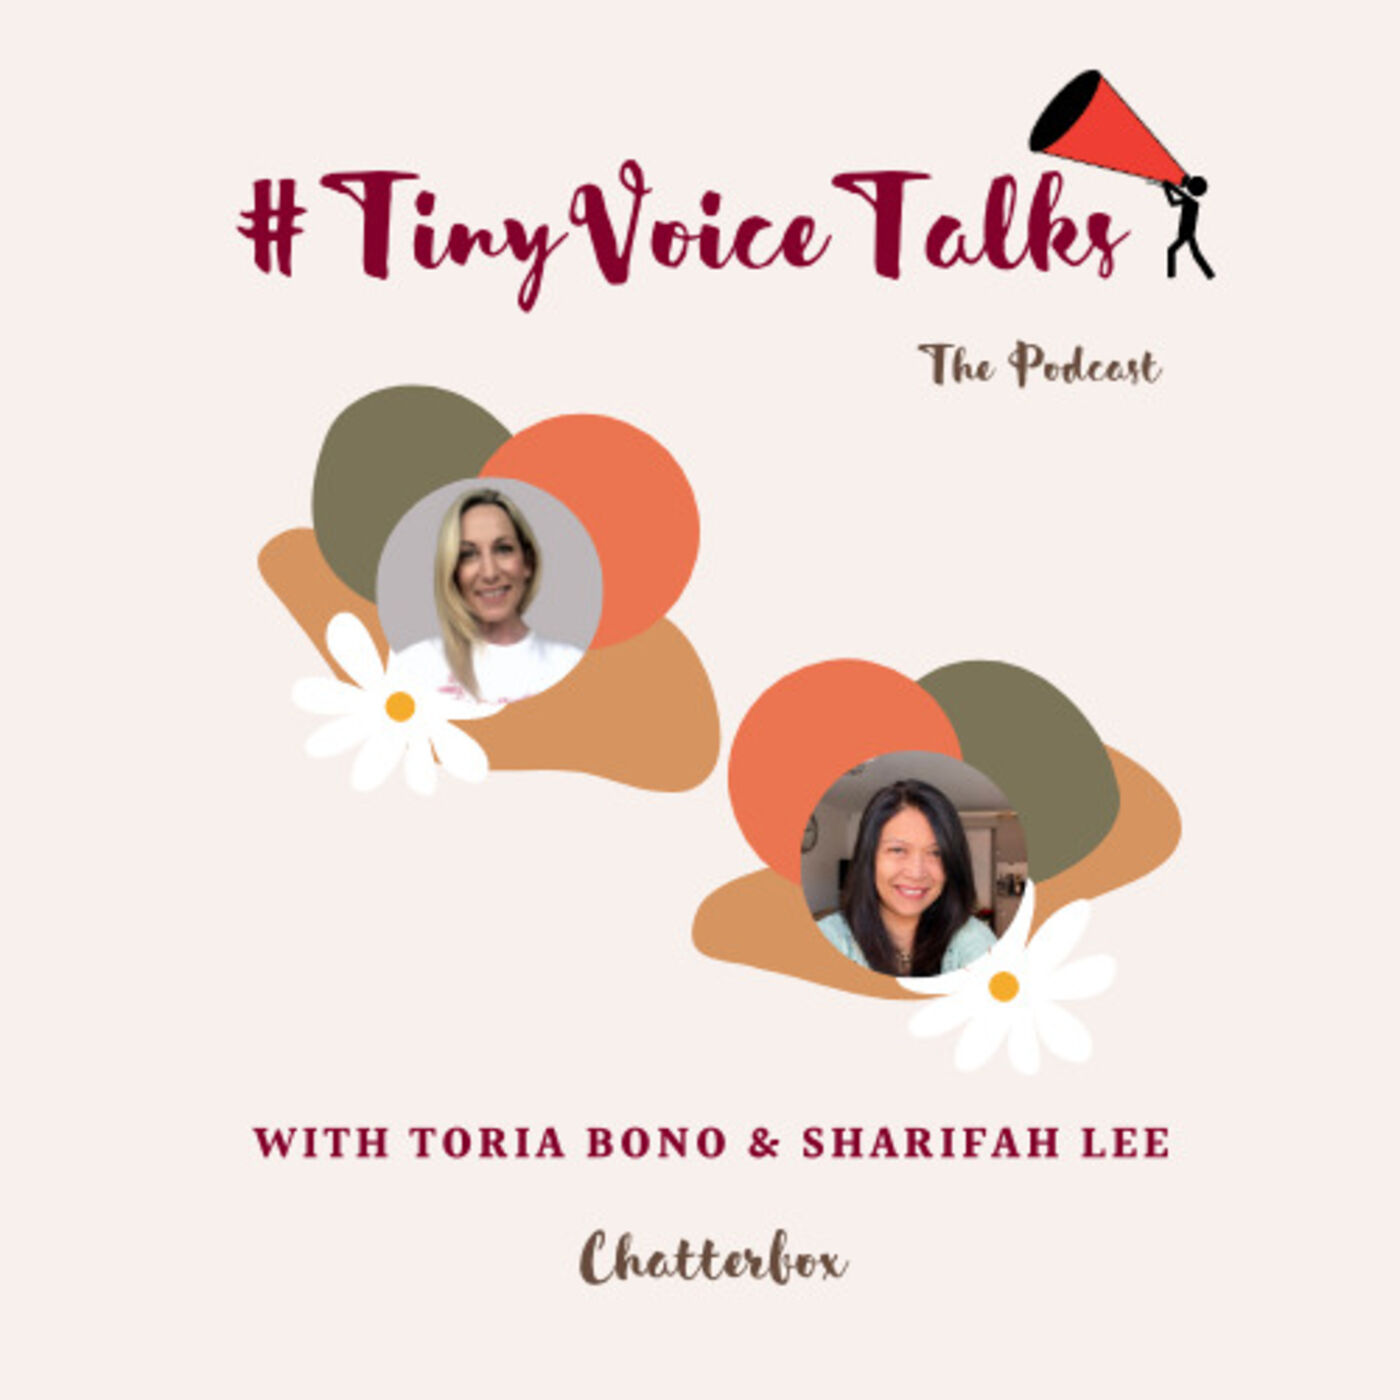 Chatterbox 4, with Sharifah Lee